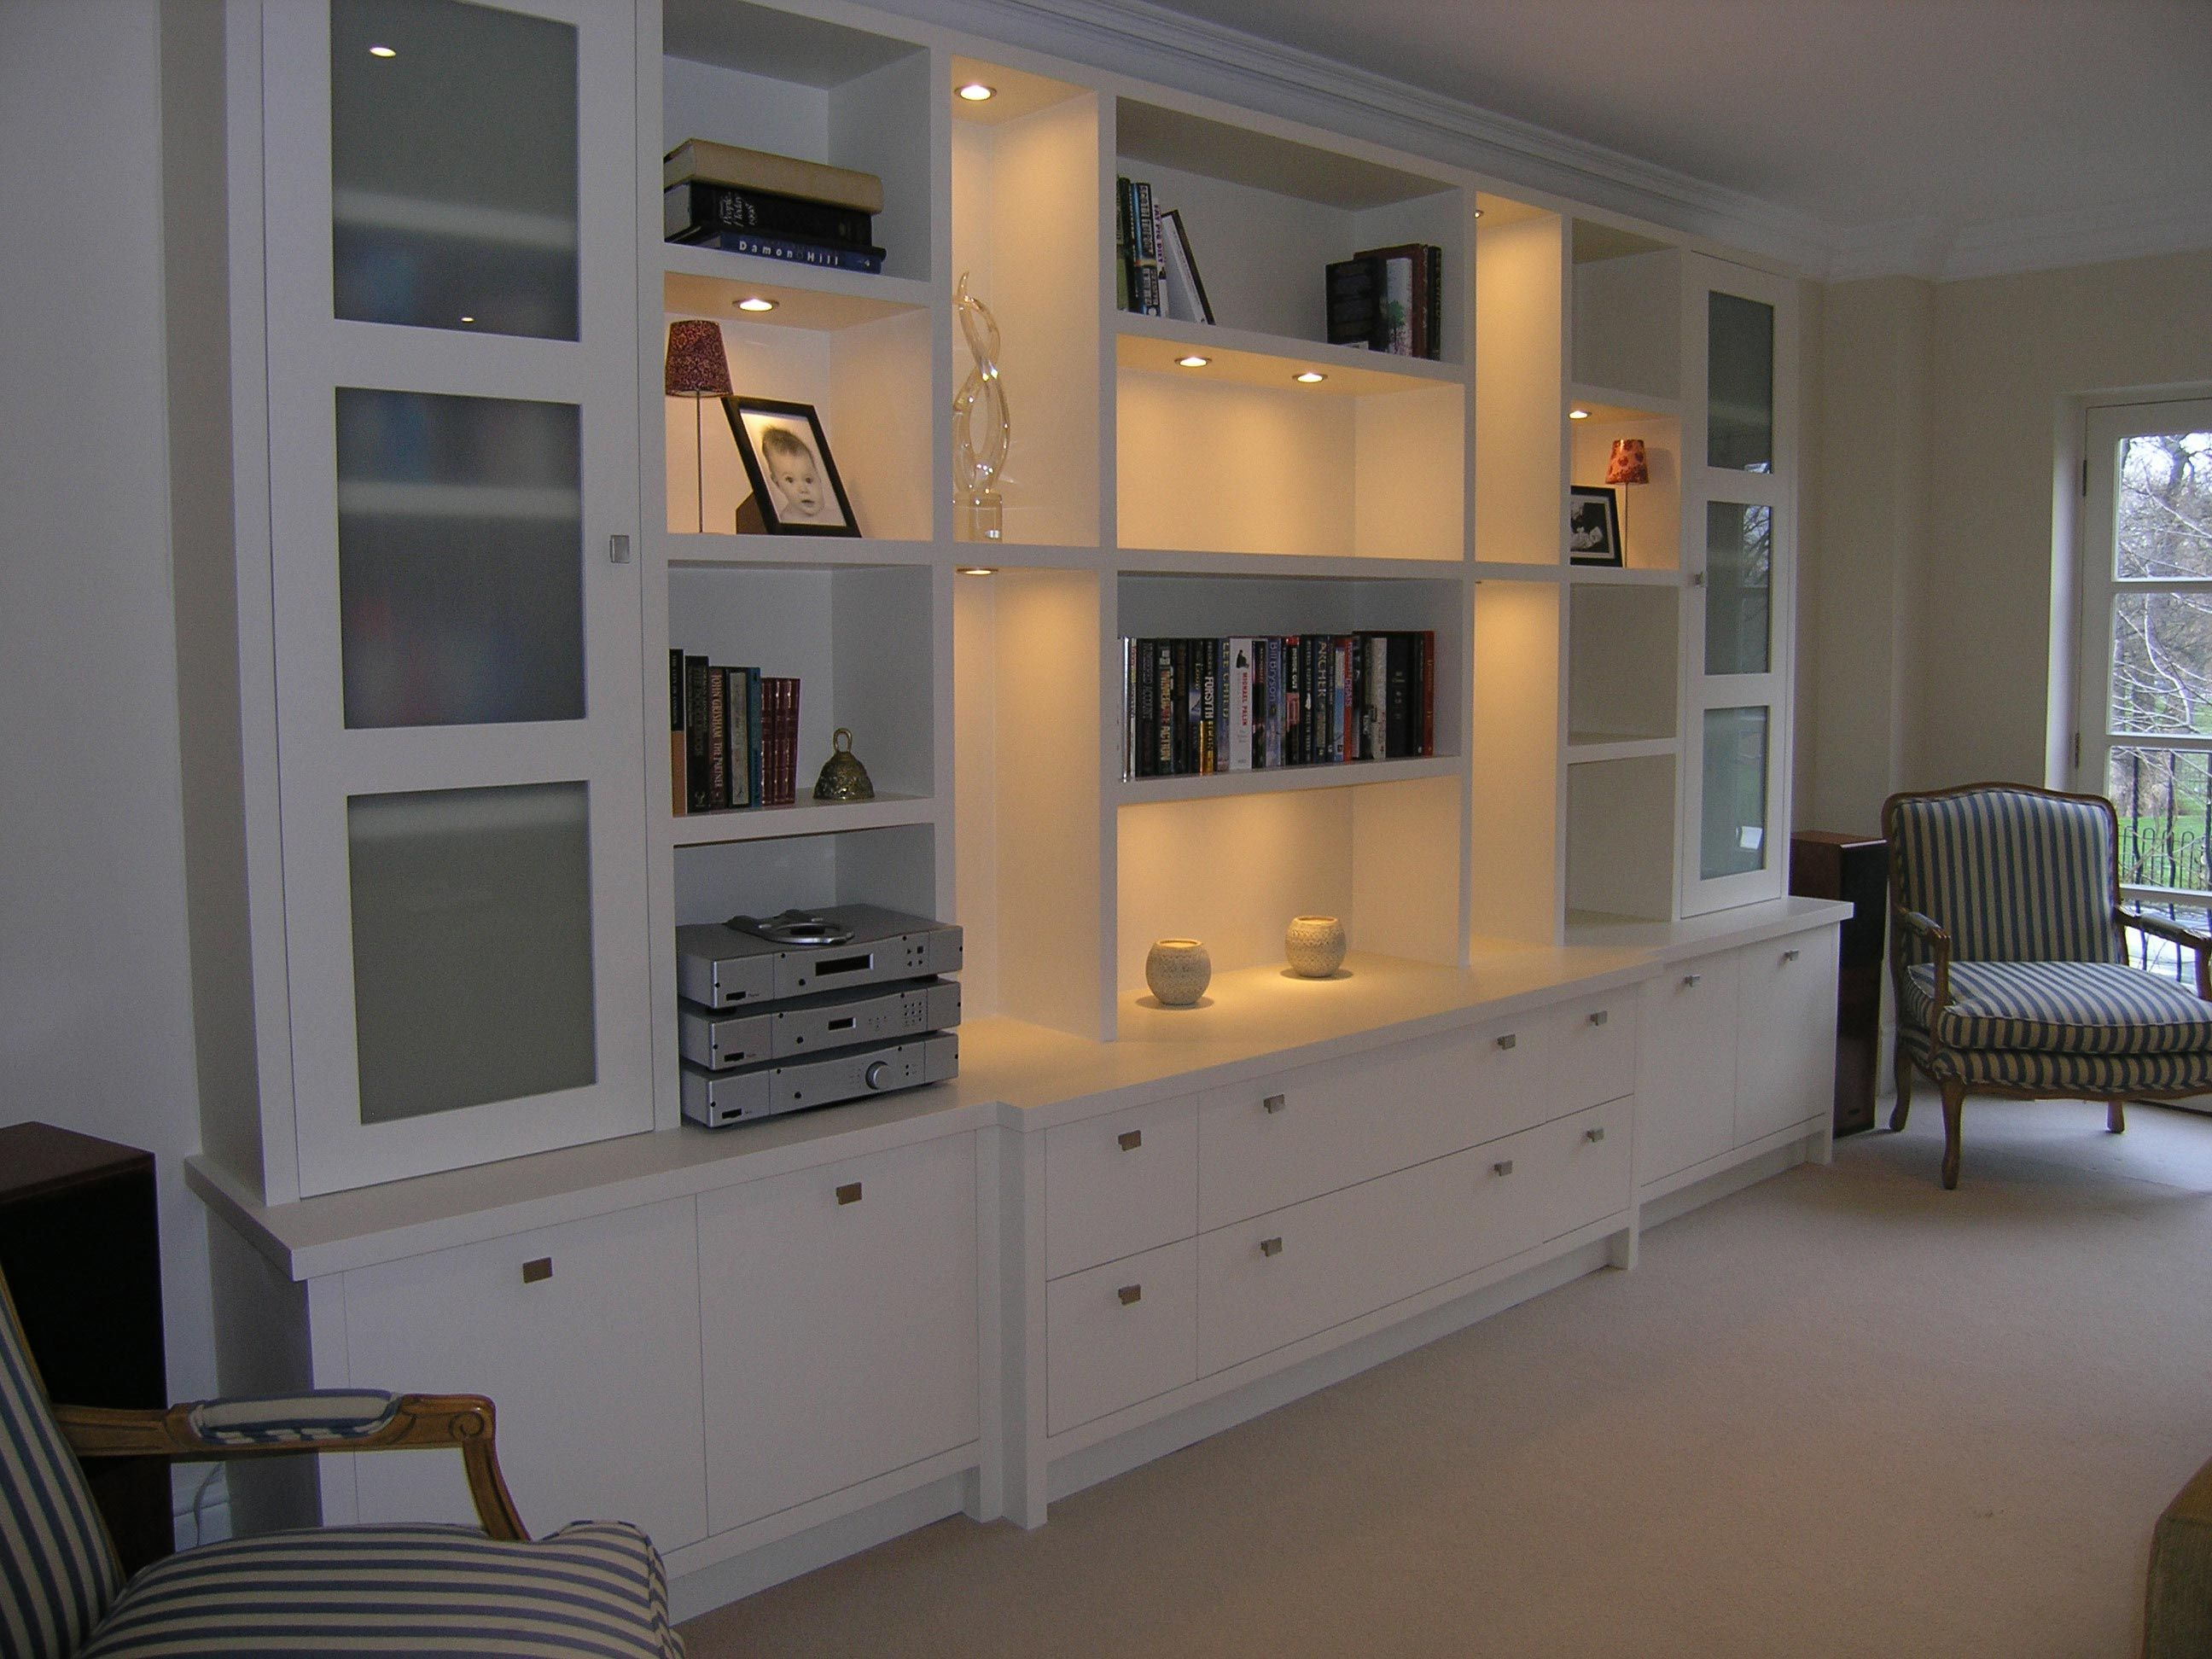 Glamorous Latest Cupboard Designs Living Room On Interior Decor Home For Bedrooms Storage Furniture Living Room Living Room Shelves Living Room Storage Cabinet